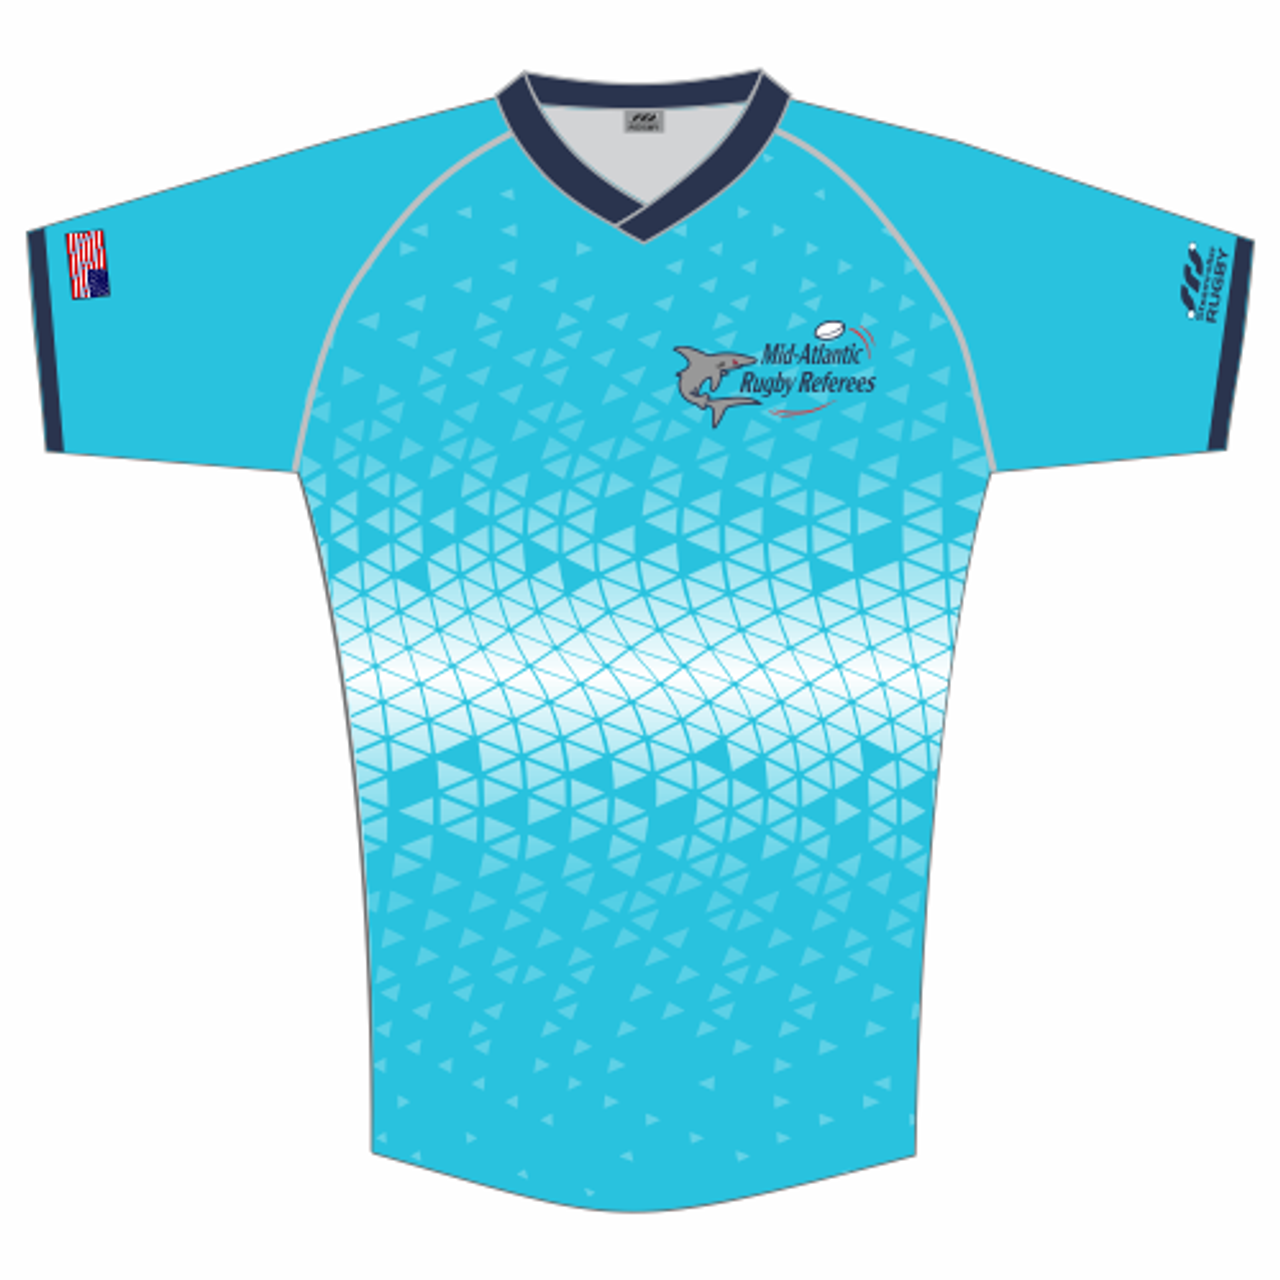 Mid-Atlantic Rugby Referees MATCH FIT Jersey, Blue